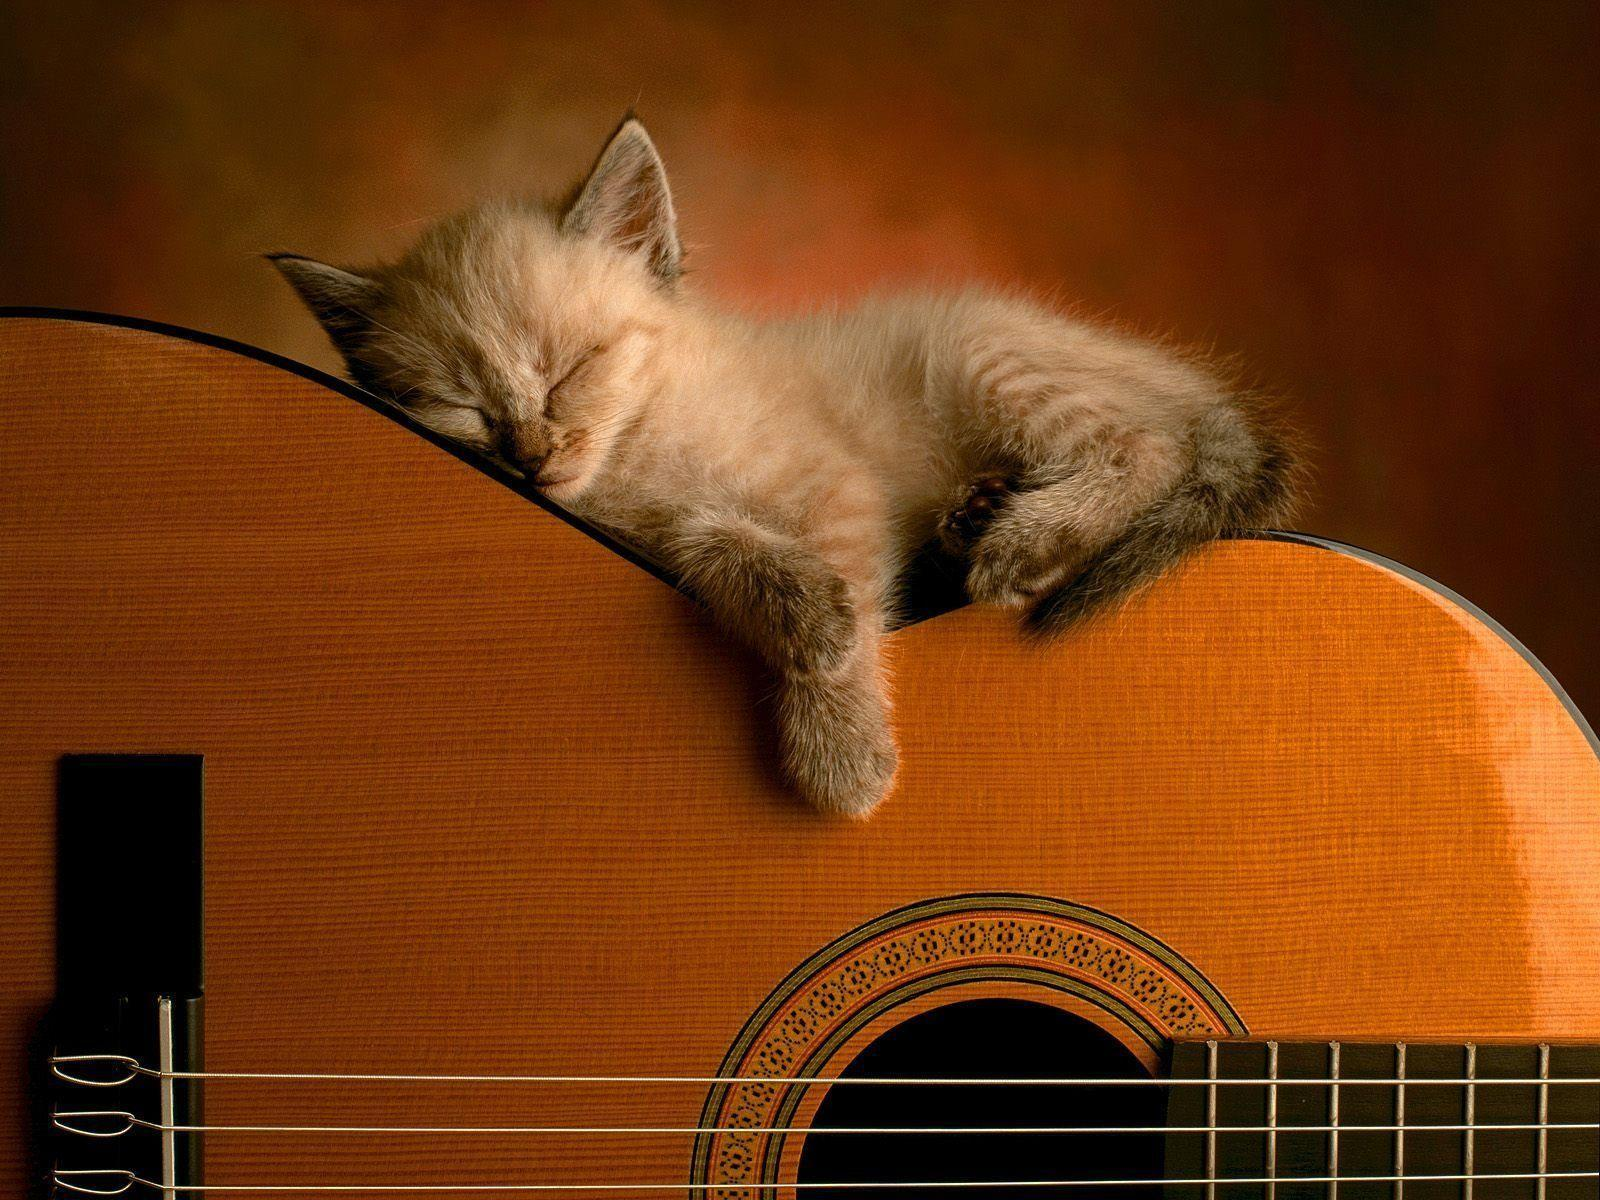 Wallpapers For > Cool Acoustic Guitar Wallpapers